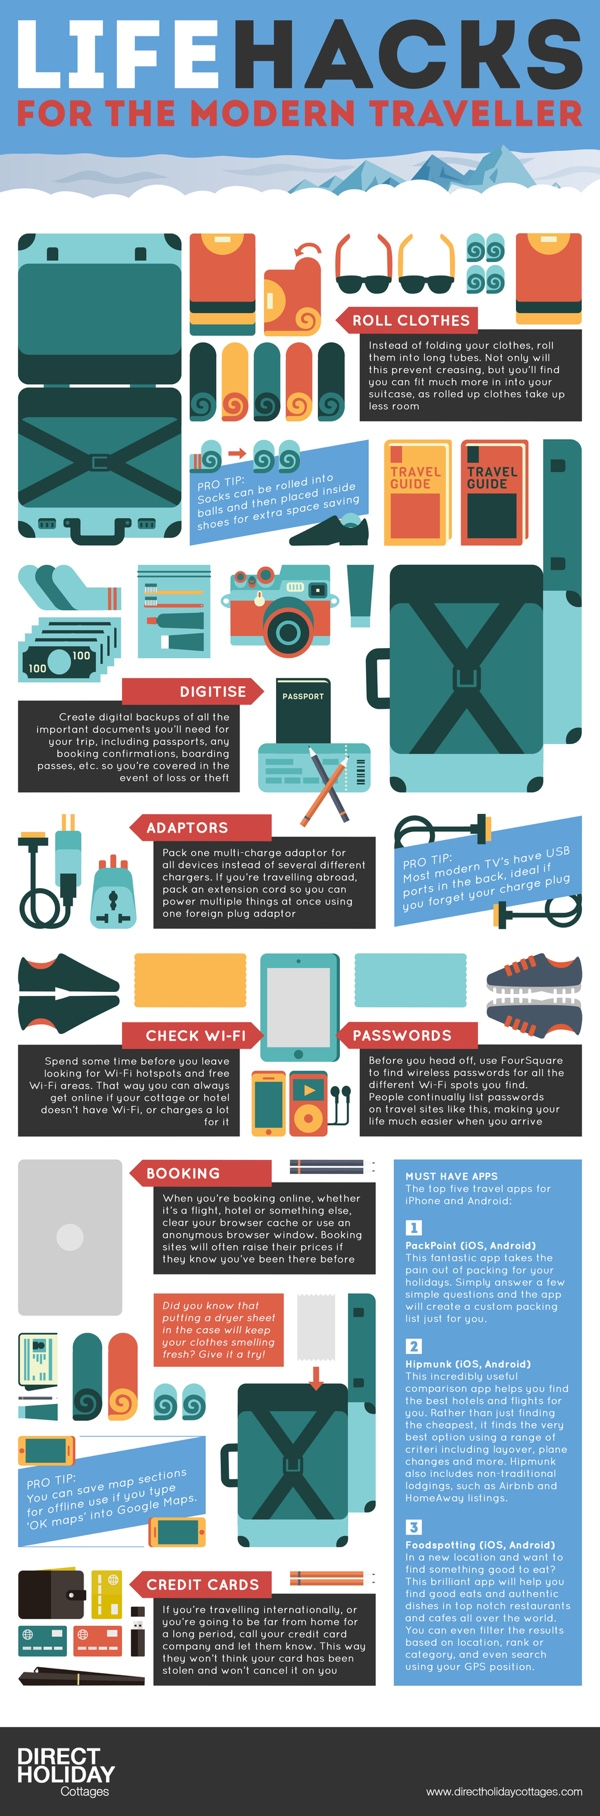 life-hacks-for-the-modern-traveller-infographic